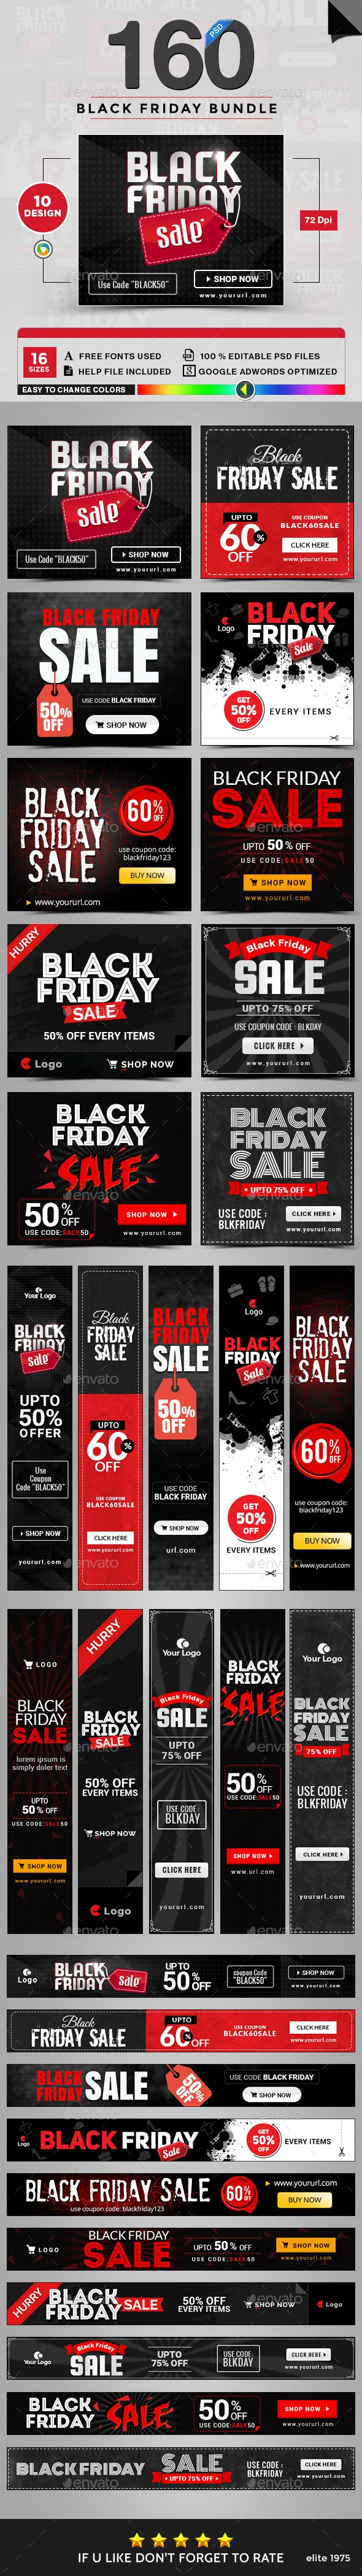 Black Friday Banners Templates PSD Bundle - 10 Sets - 160 Designs